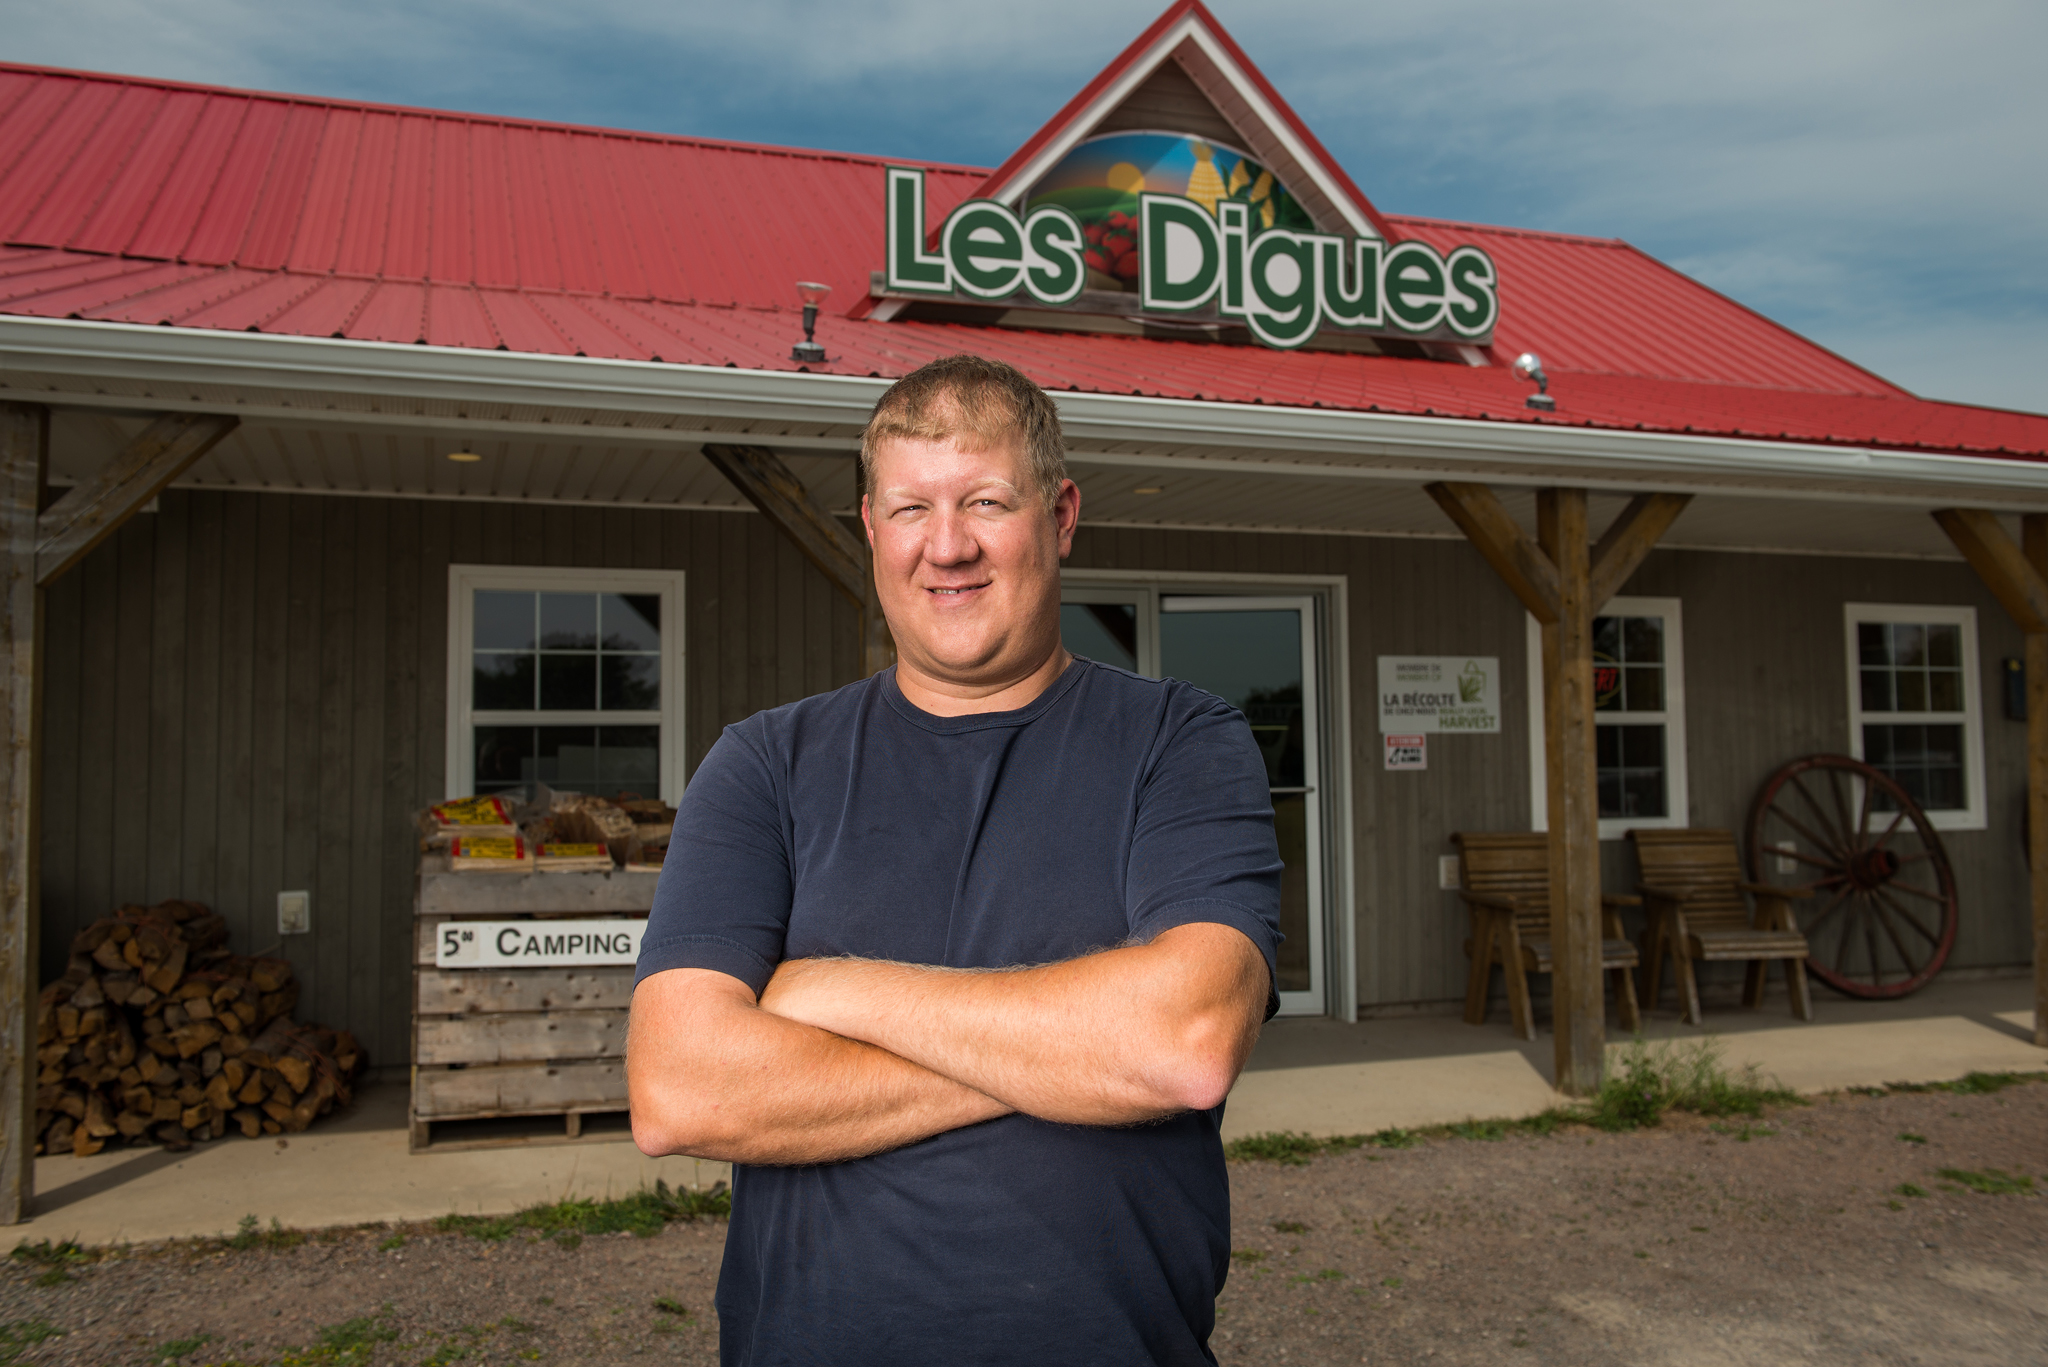 Les Digues - Récolte de Chez Nous - Really Local Harvest